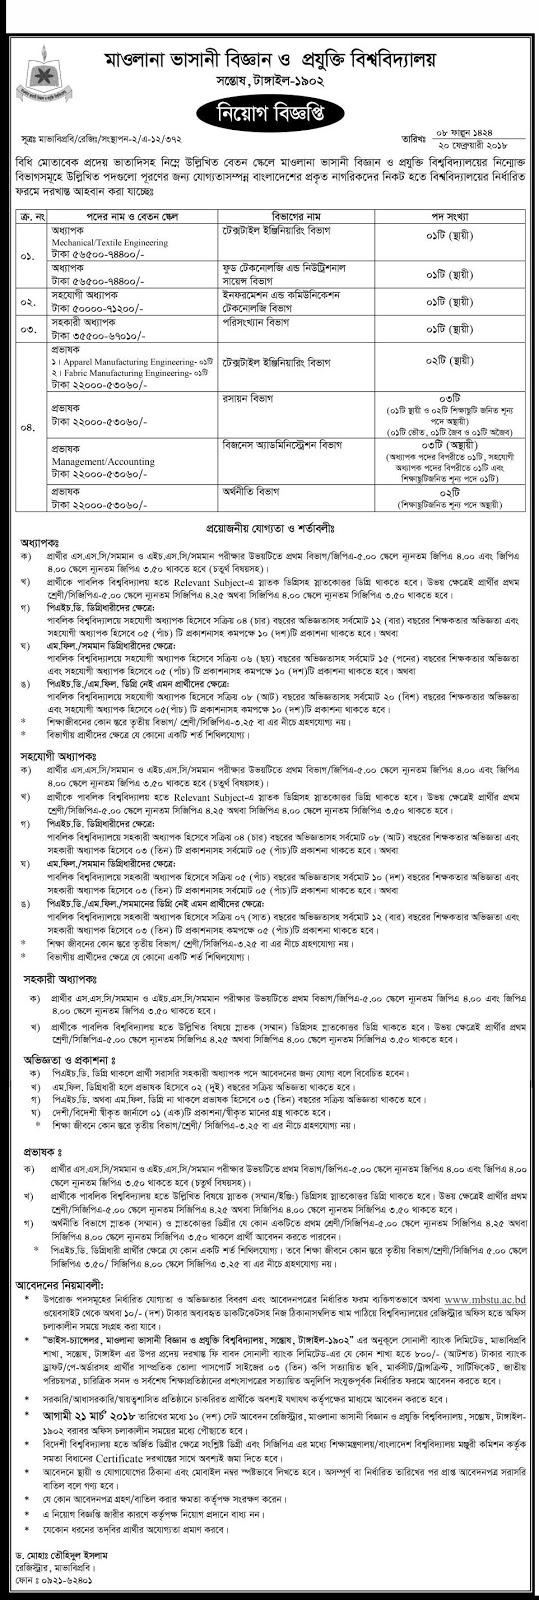 MBSTU Professor and Lecturer Recruitment Circular 2018